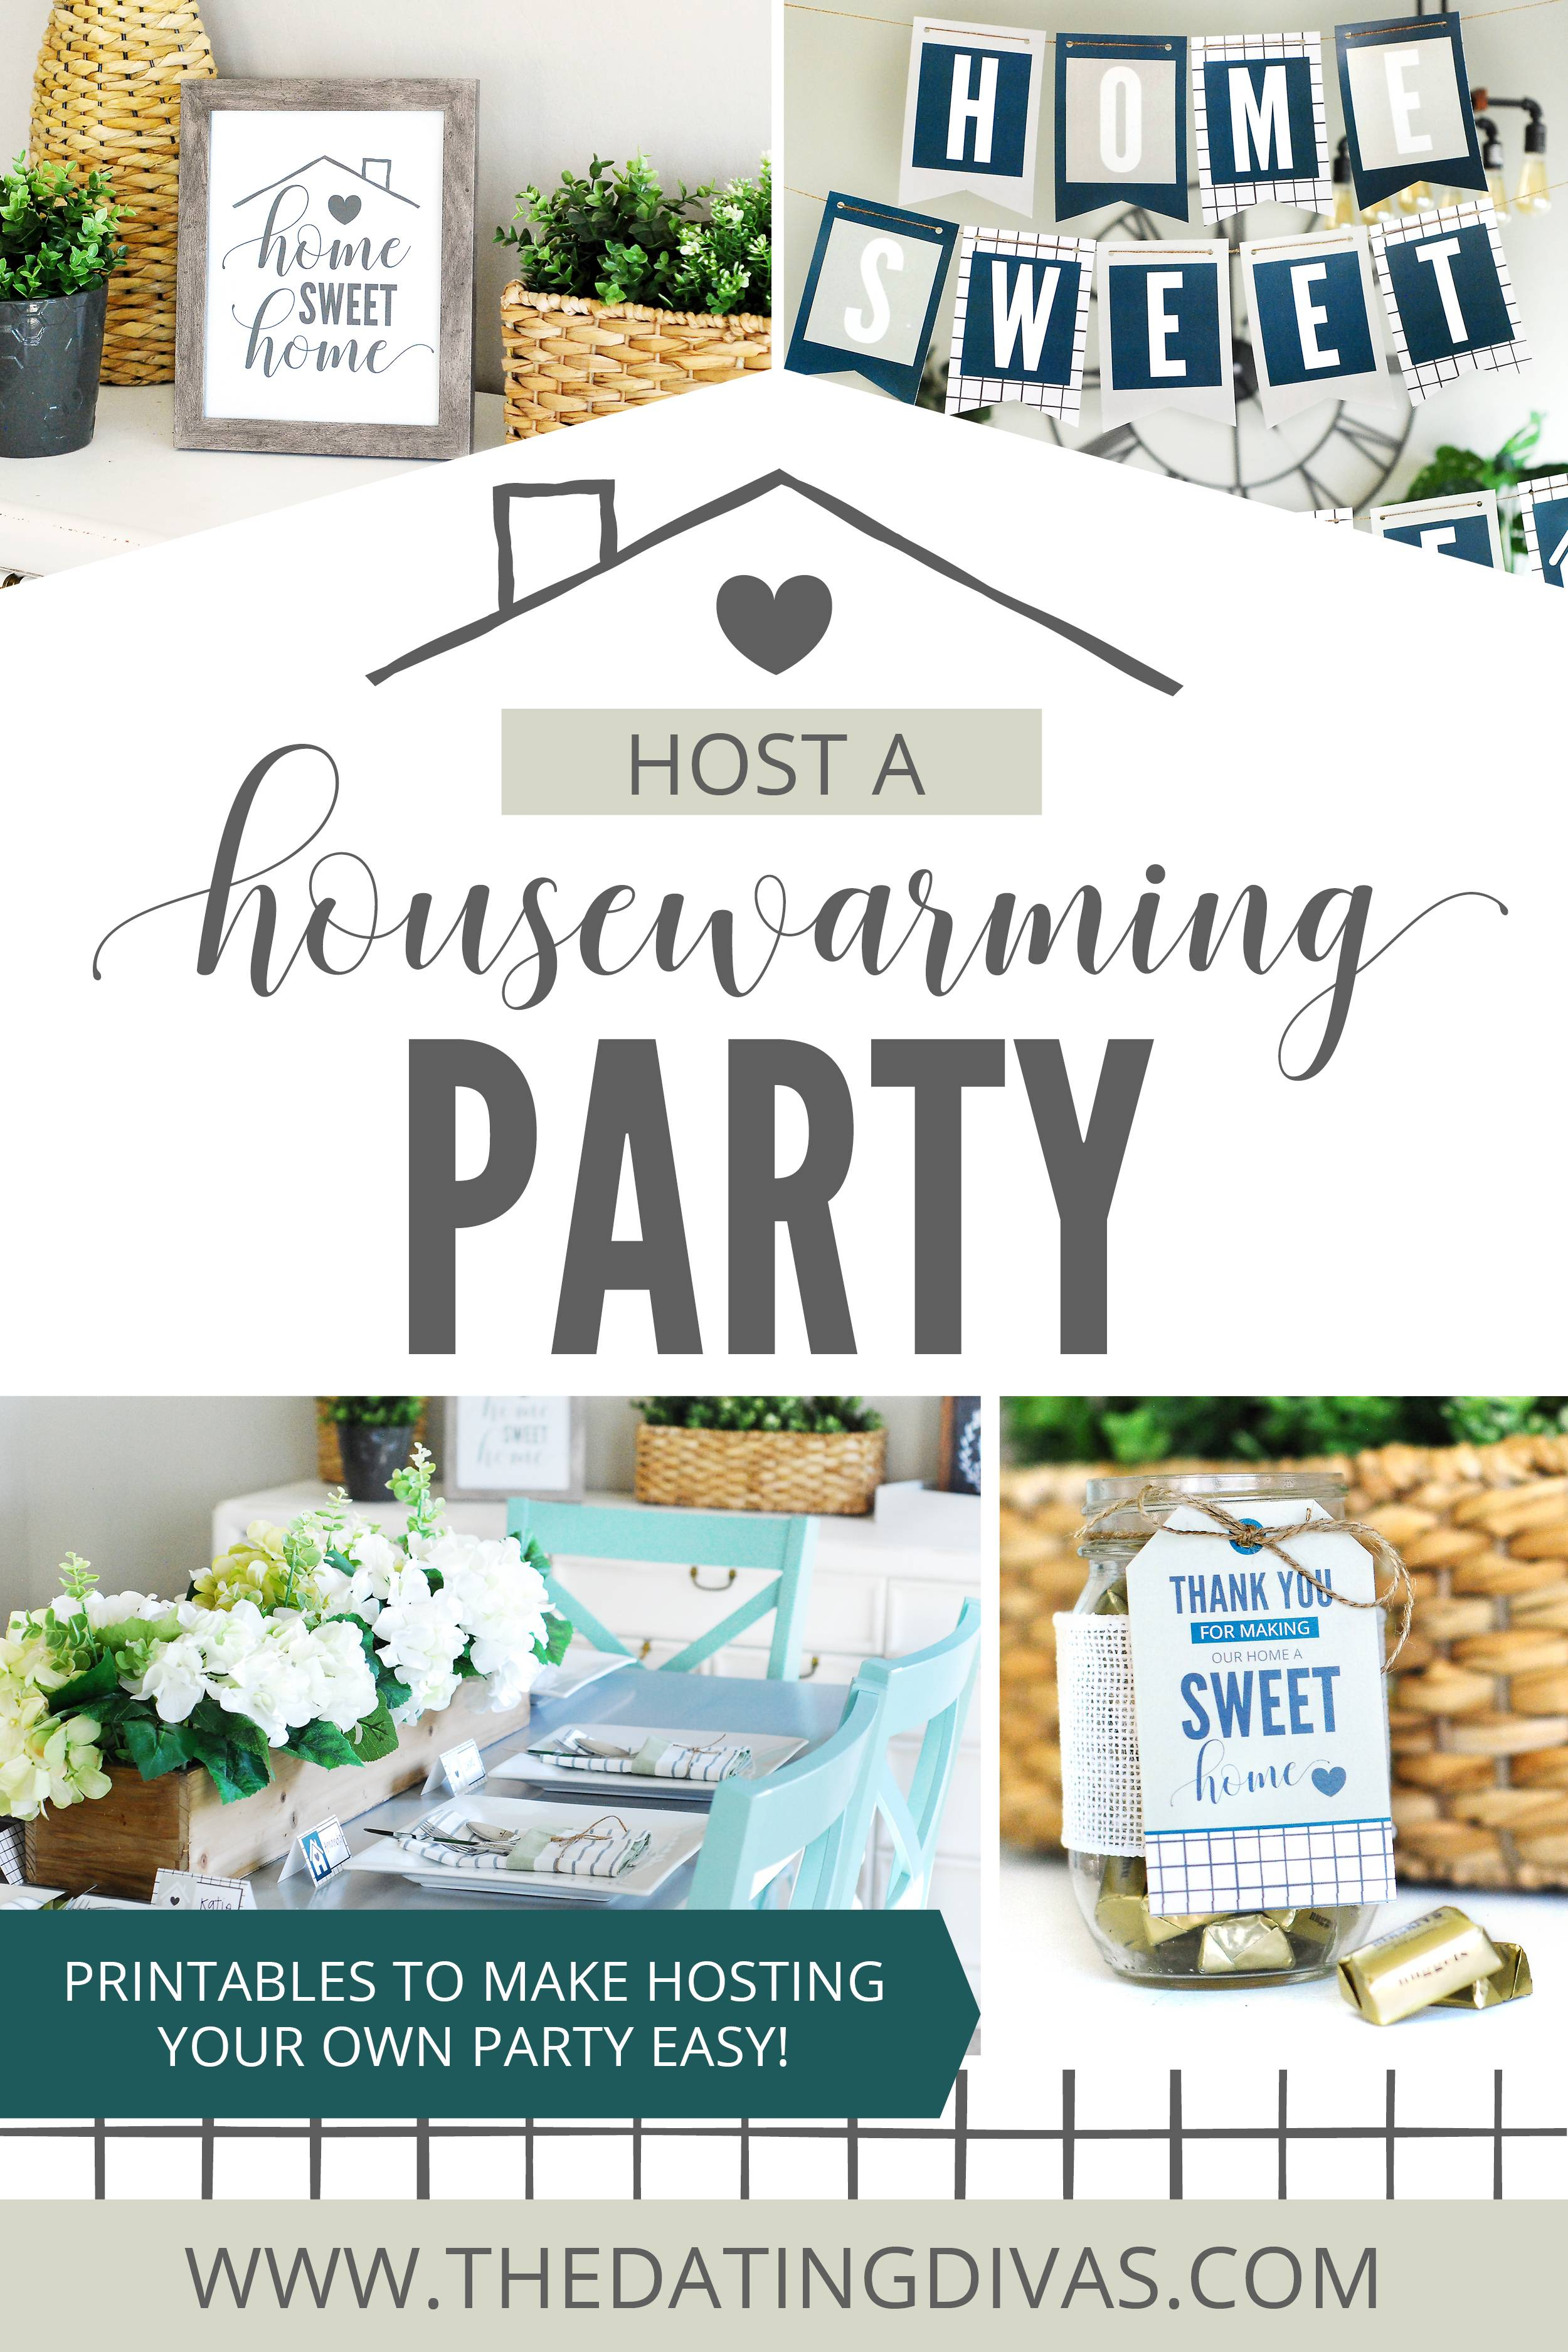 Host a Housewarming Party